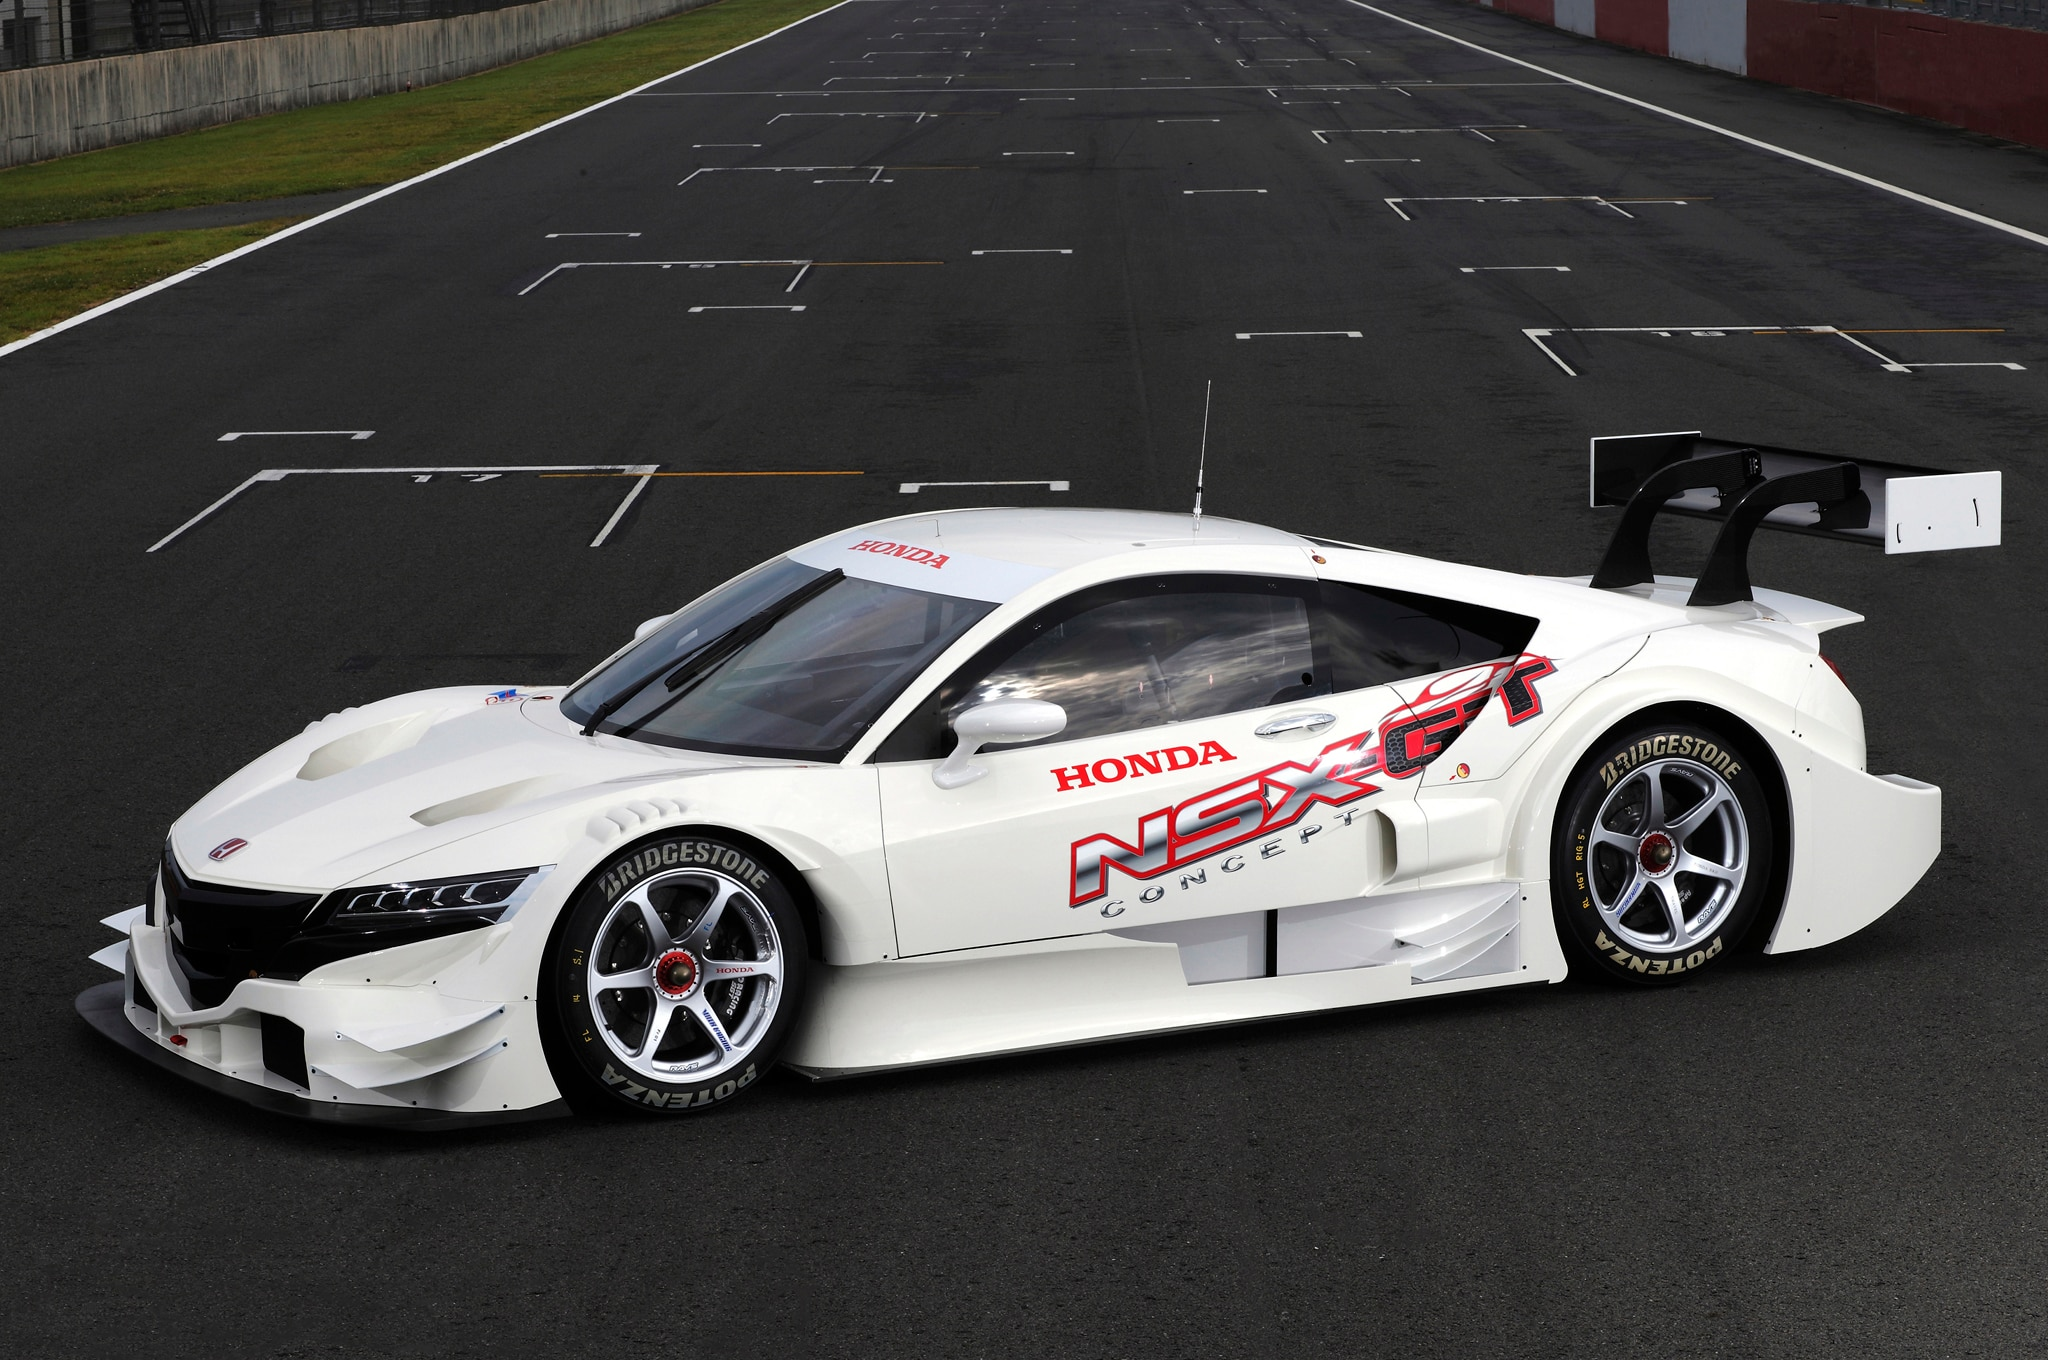 Honda Lexus Show New Race Cars For Japanese Super Gt